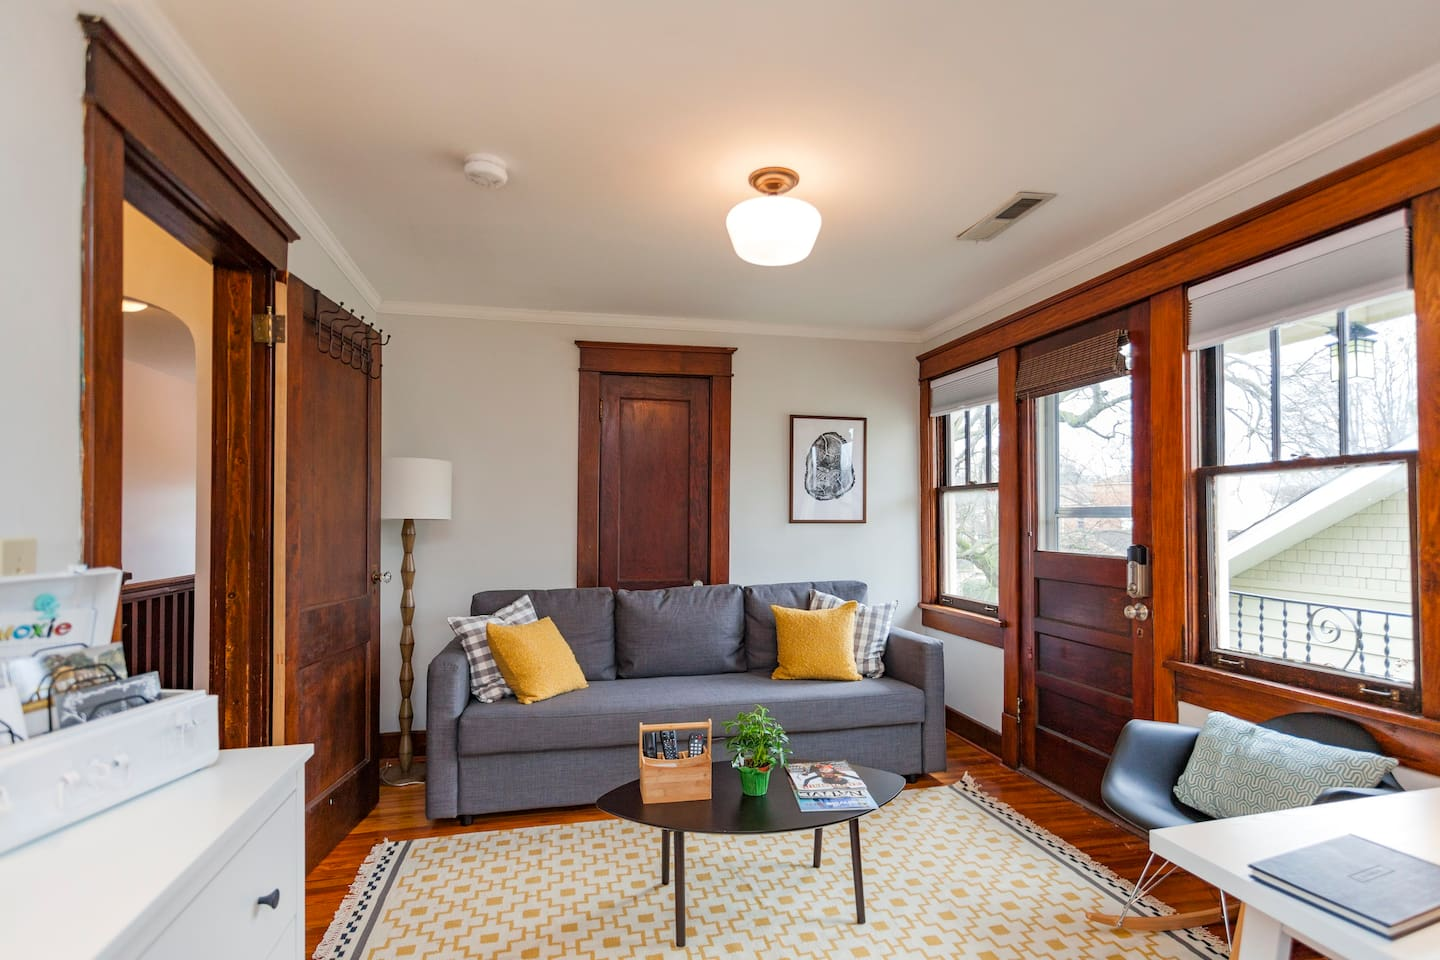 Hang out on the couch to watch TV or look out the window at the view or our neighborhood.